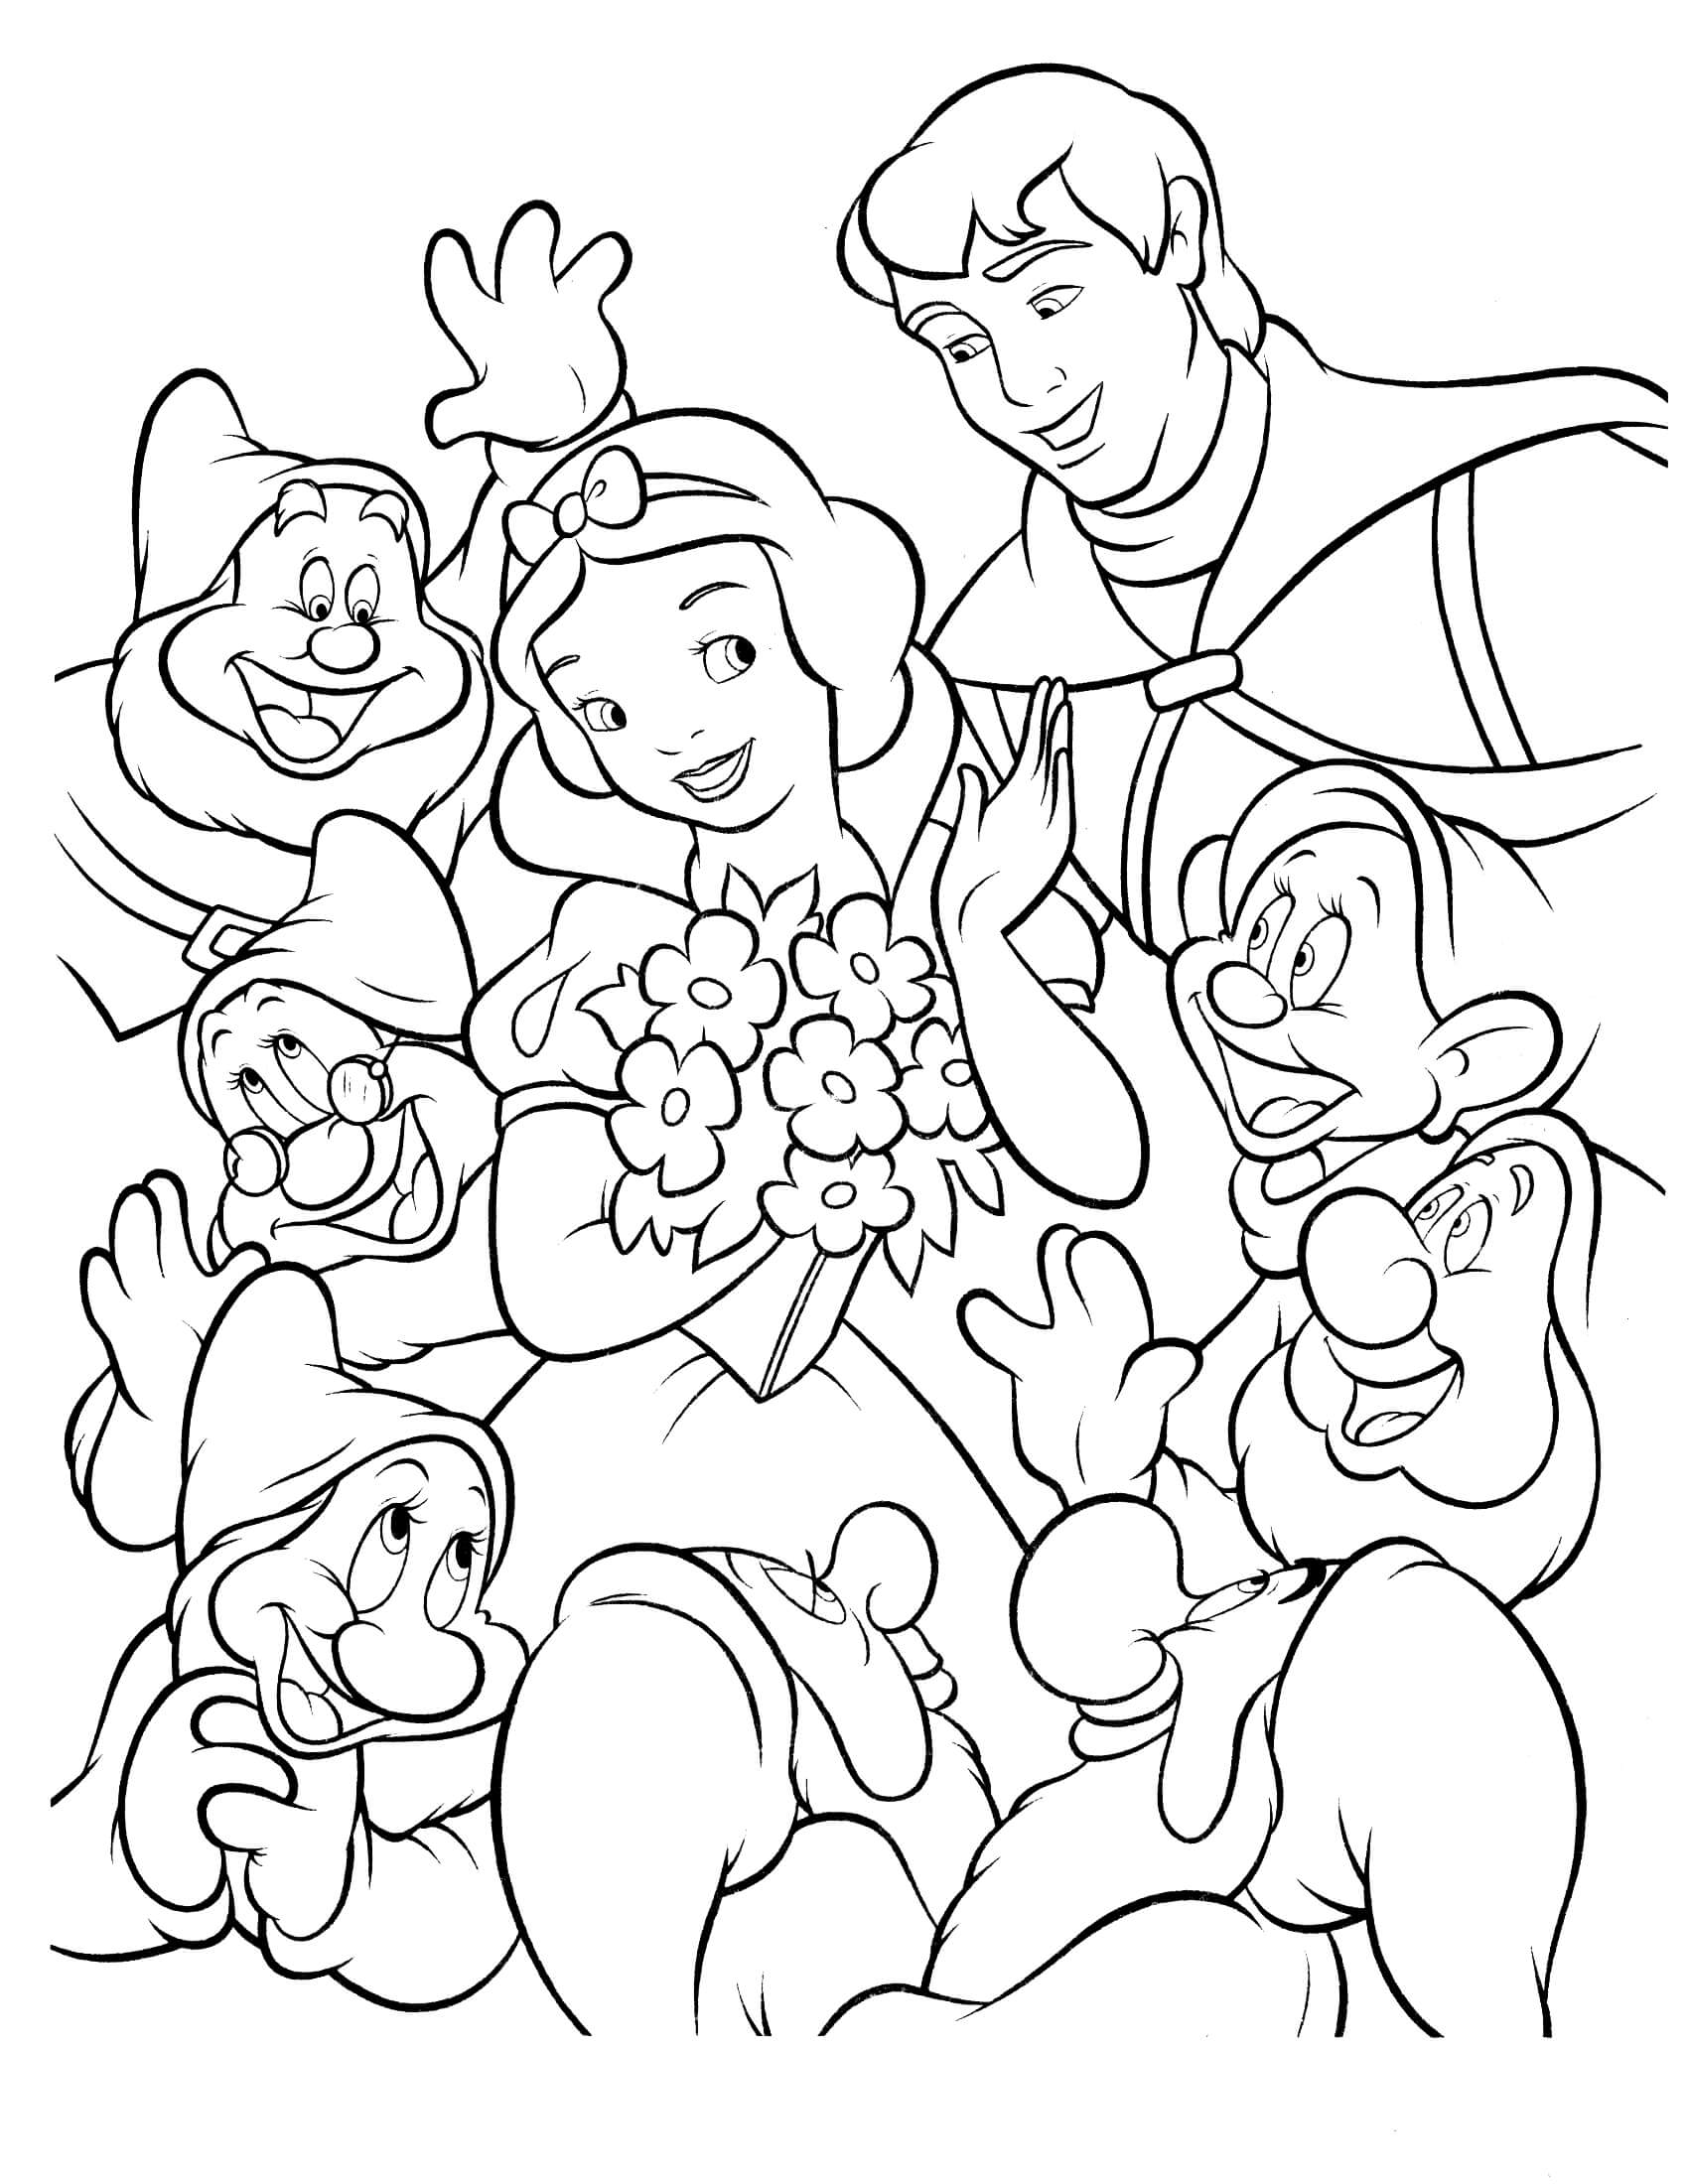 free snow white coloring pages snow white coloring pages best coloring pages for kids white snow coloring pages free